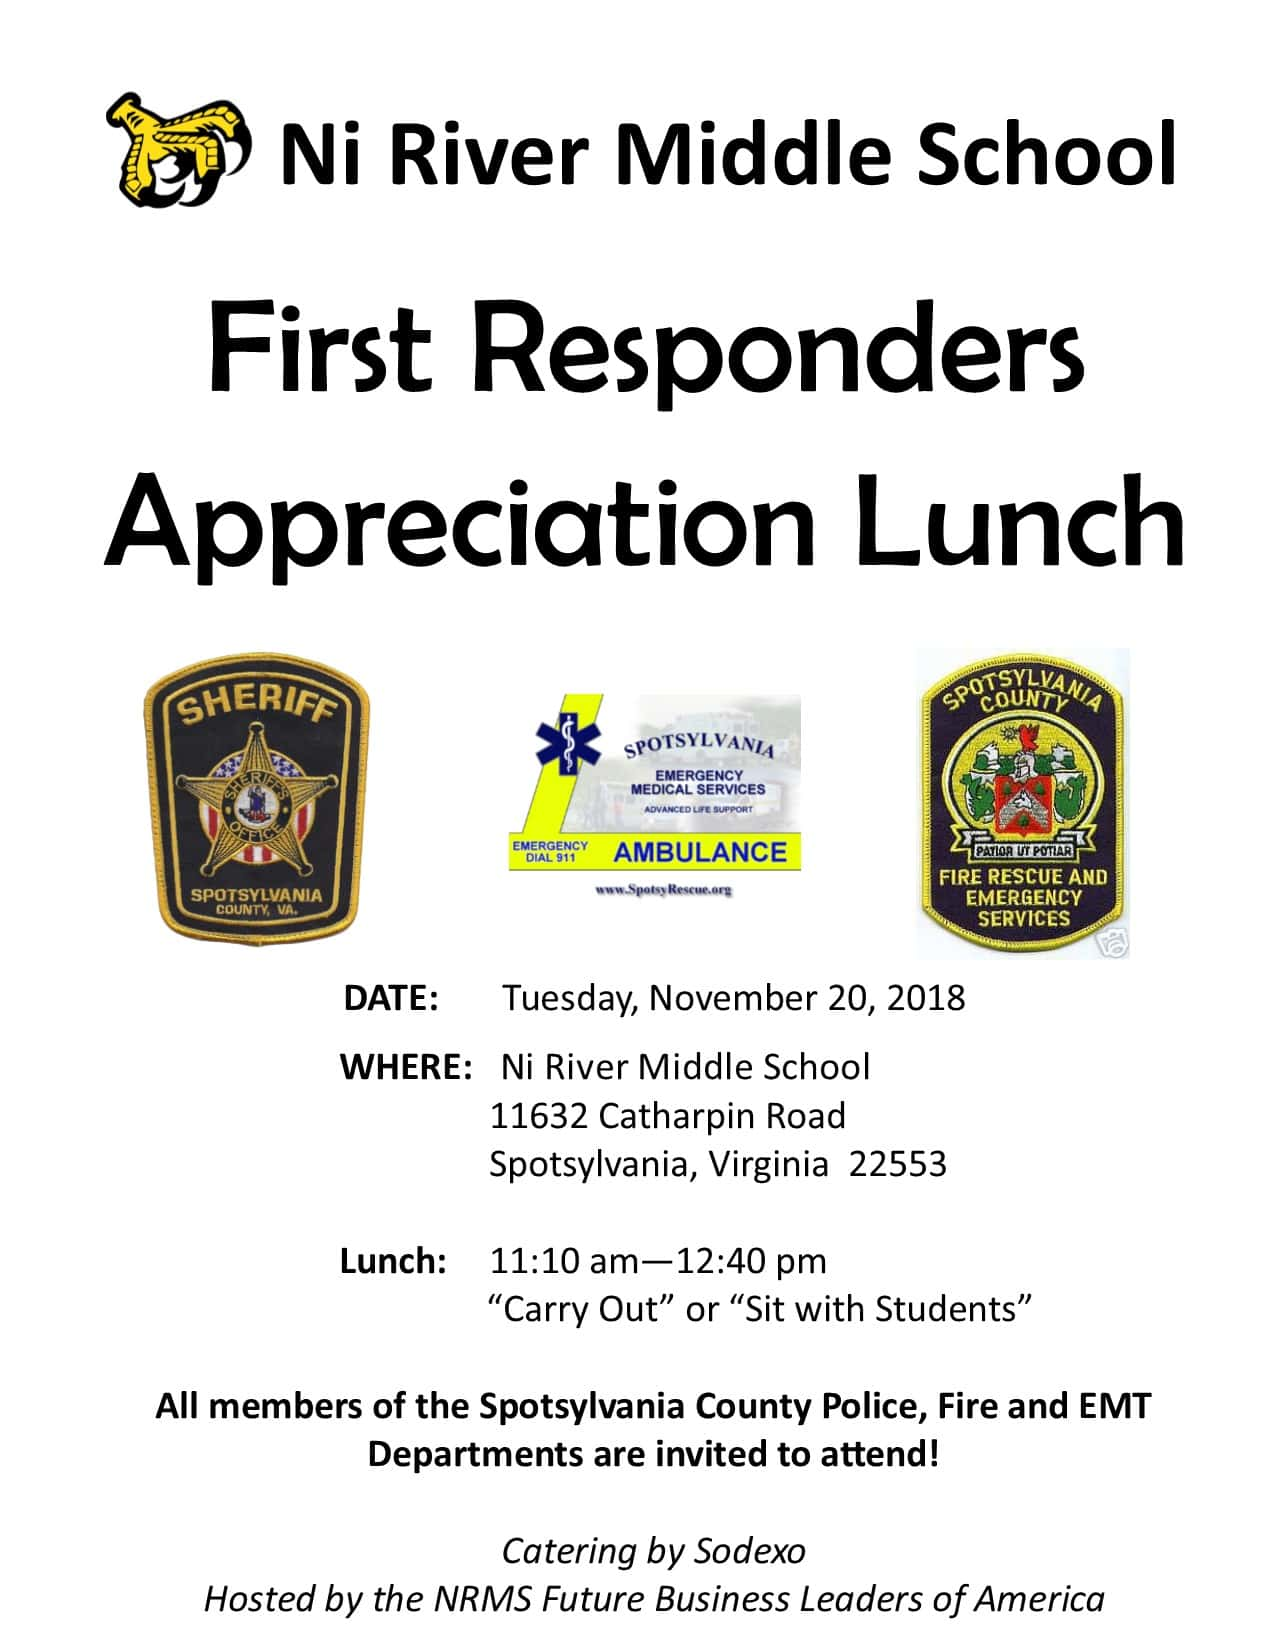 Ni River Middle School First Responders Appreciation Lunch